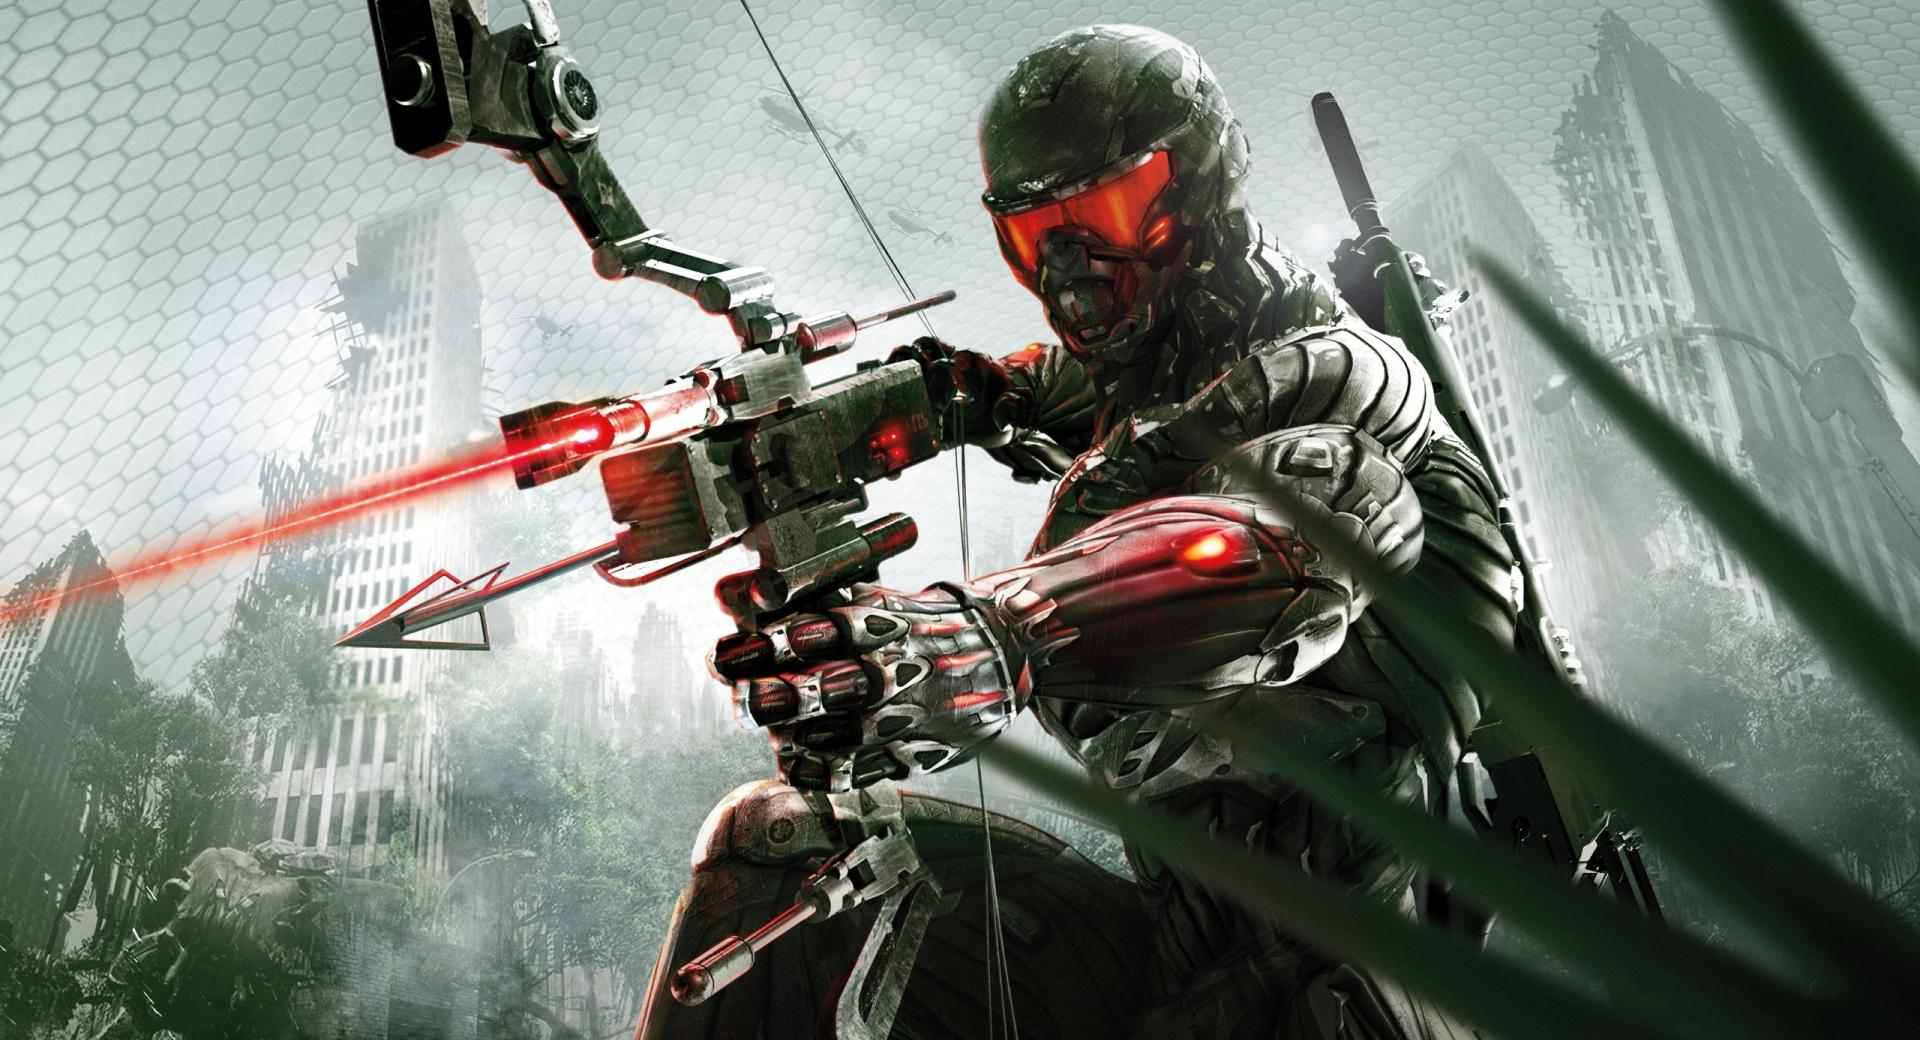 Crysis 3 (2013) wallpapers HD quality